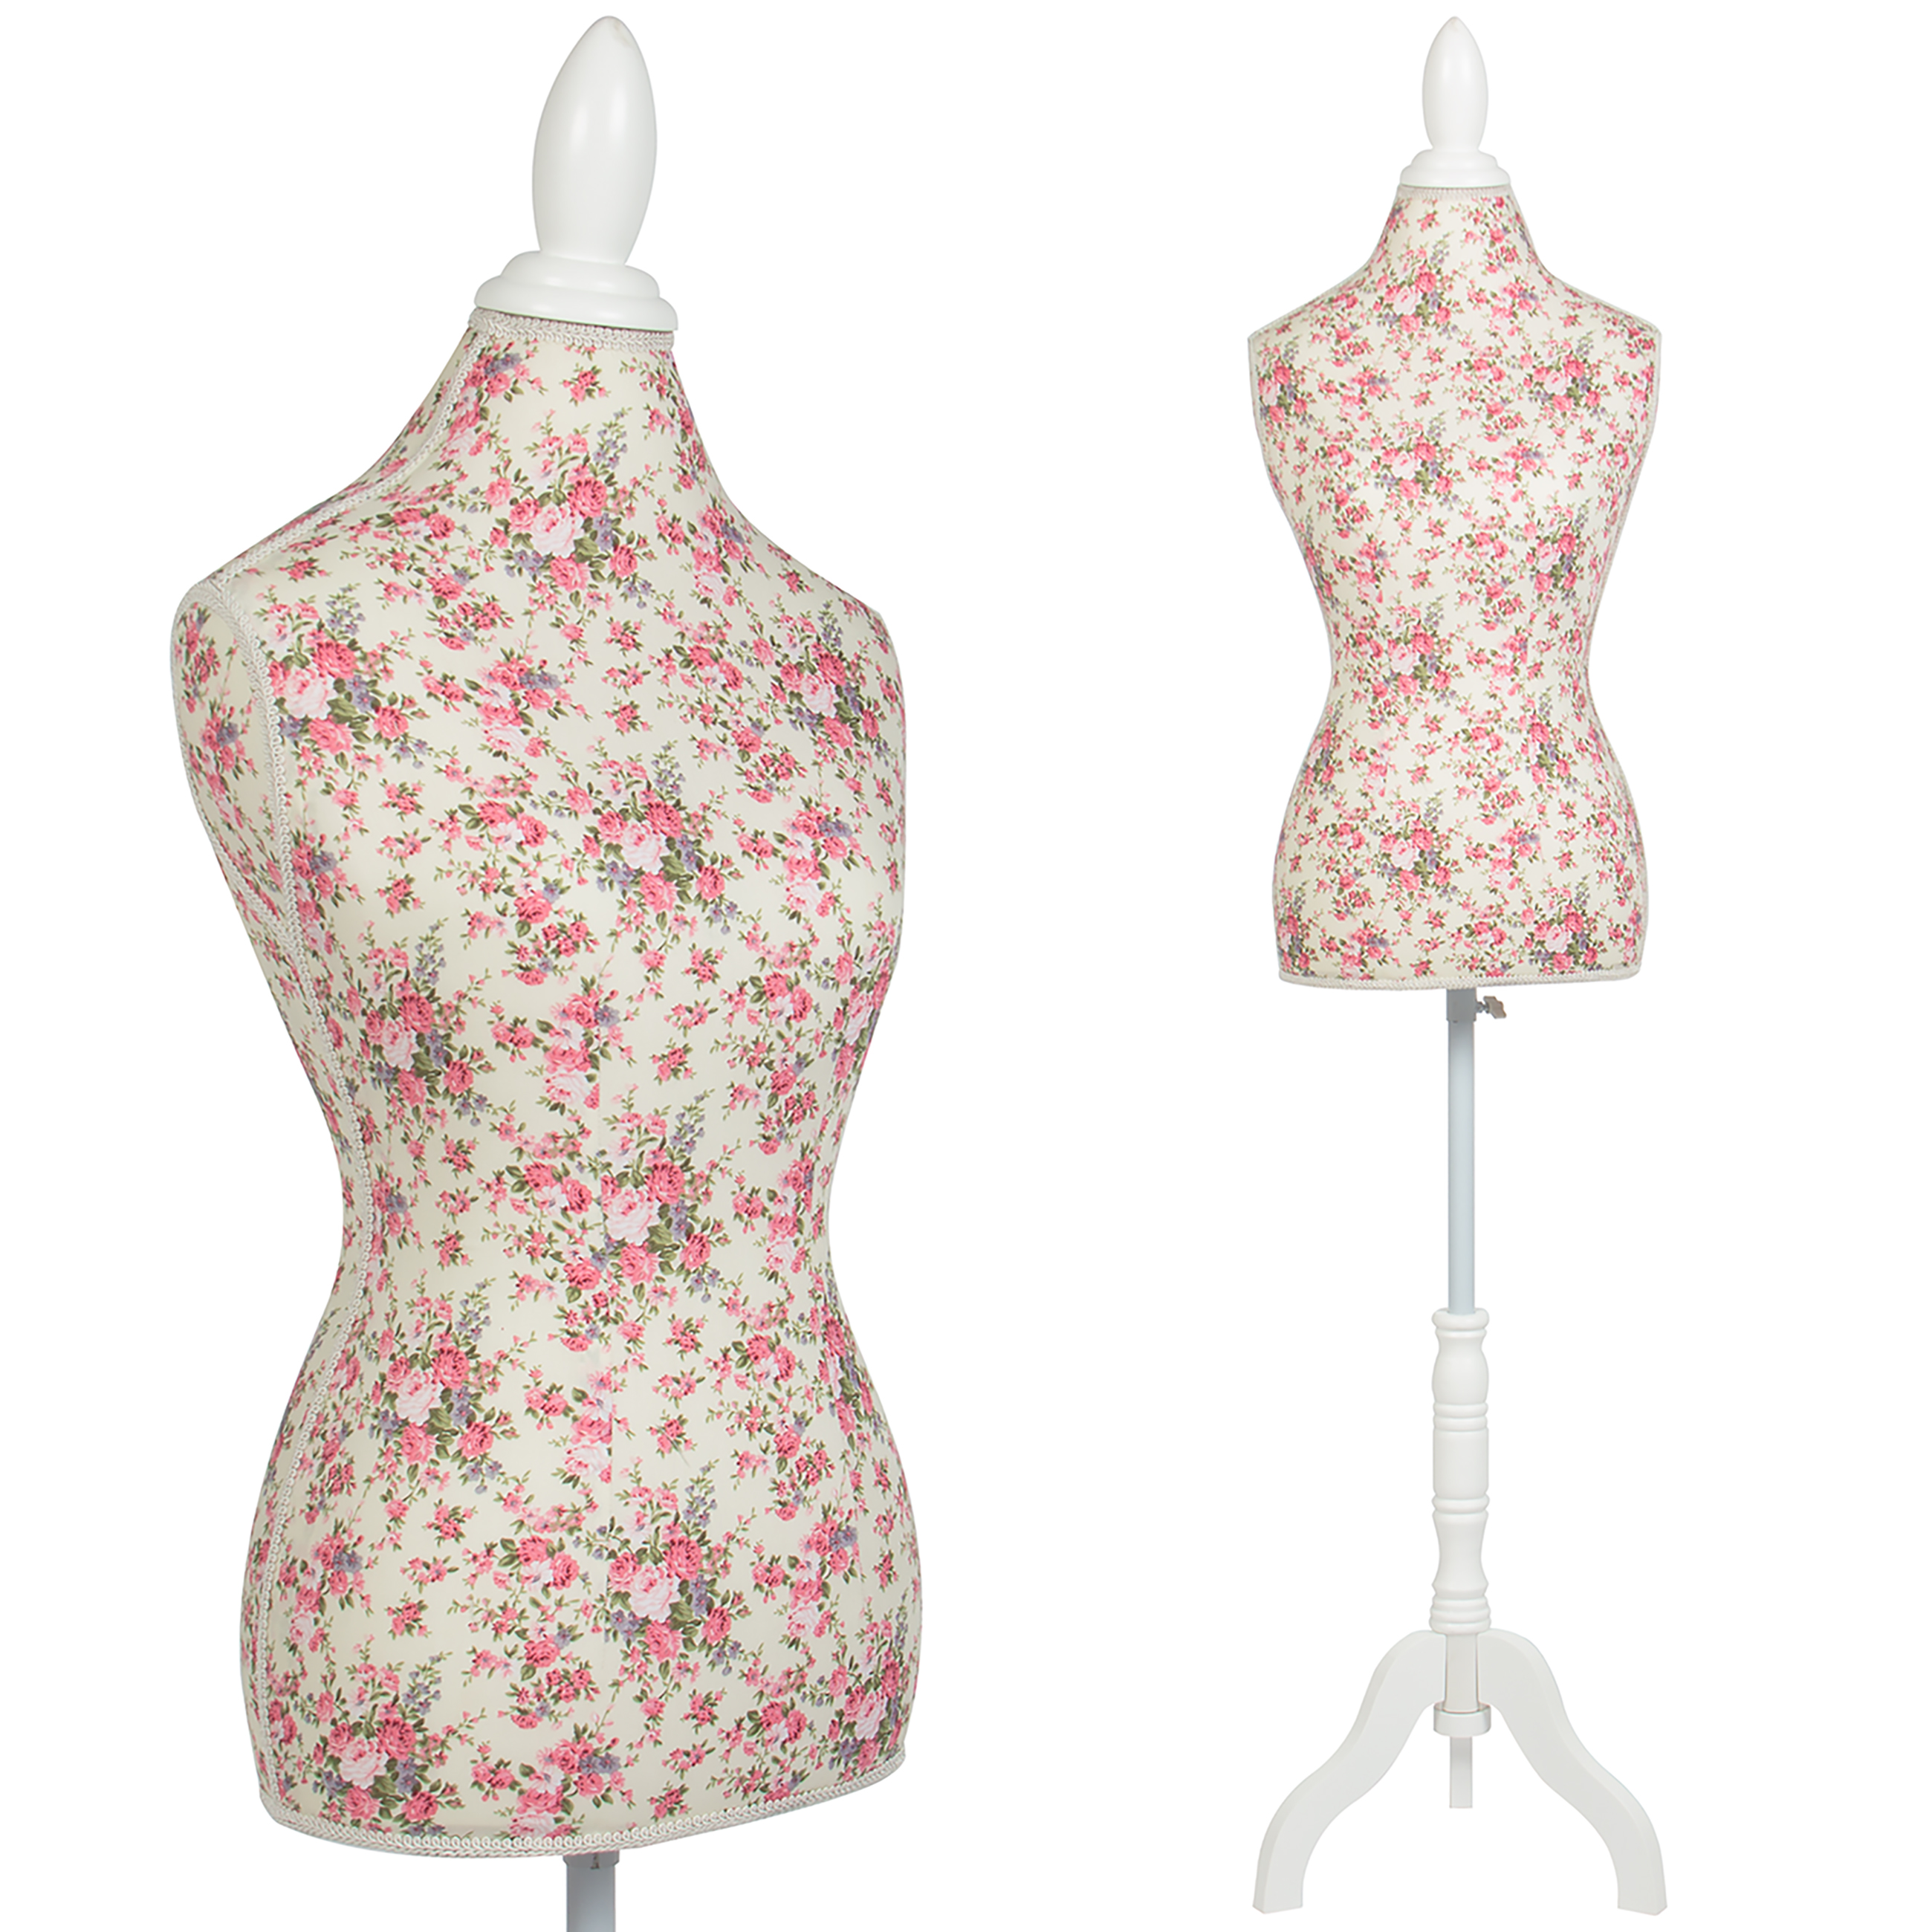 Female Mannequin Torso Dress Form Display W/ White Tripod Stand Floral Pattern